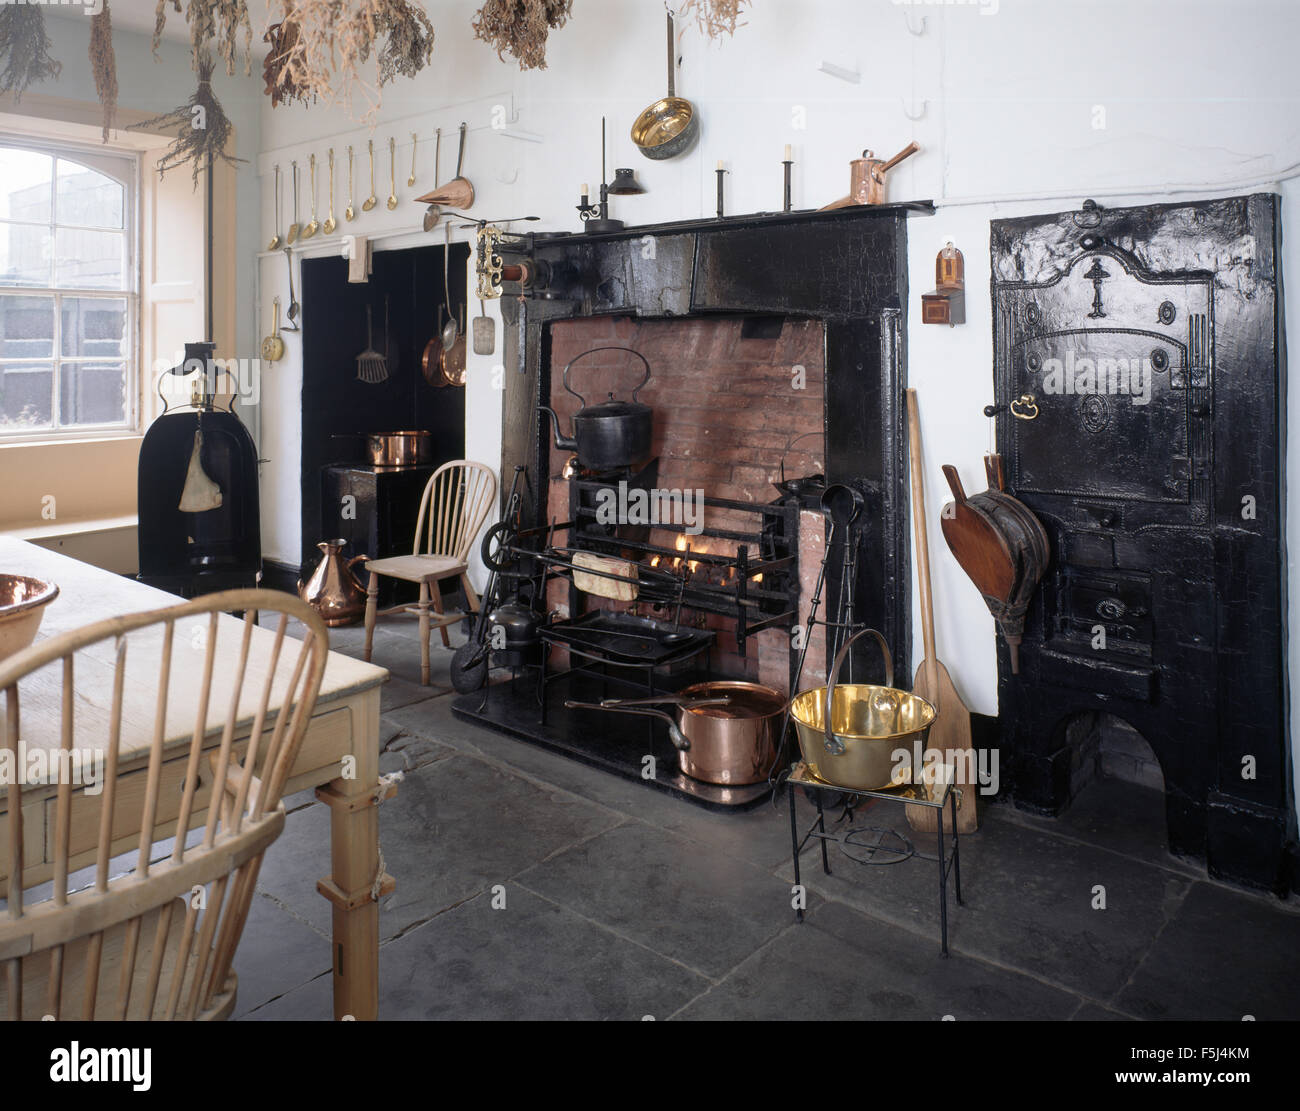 Victorian Kitchen Floors Flagstone Floor In Am Authentic Victorian Kitchen With A Large